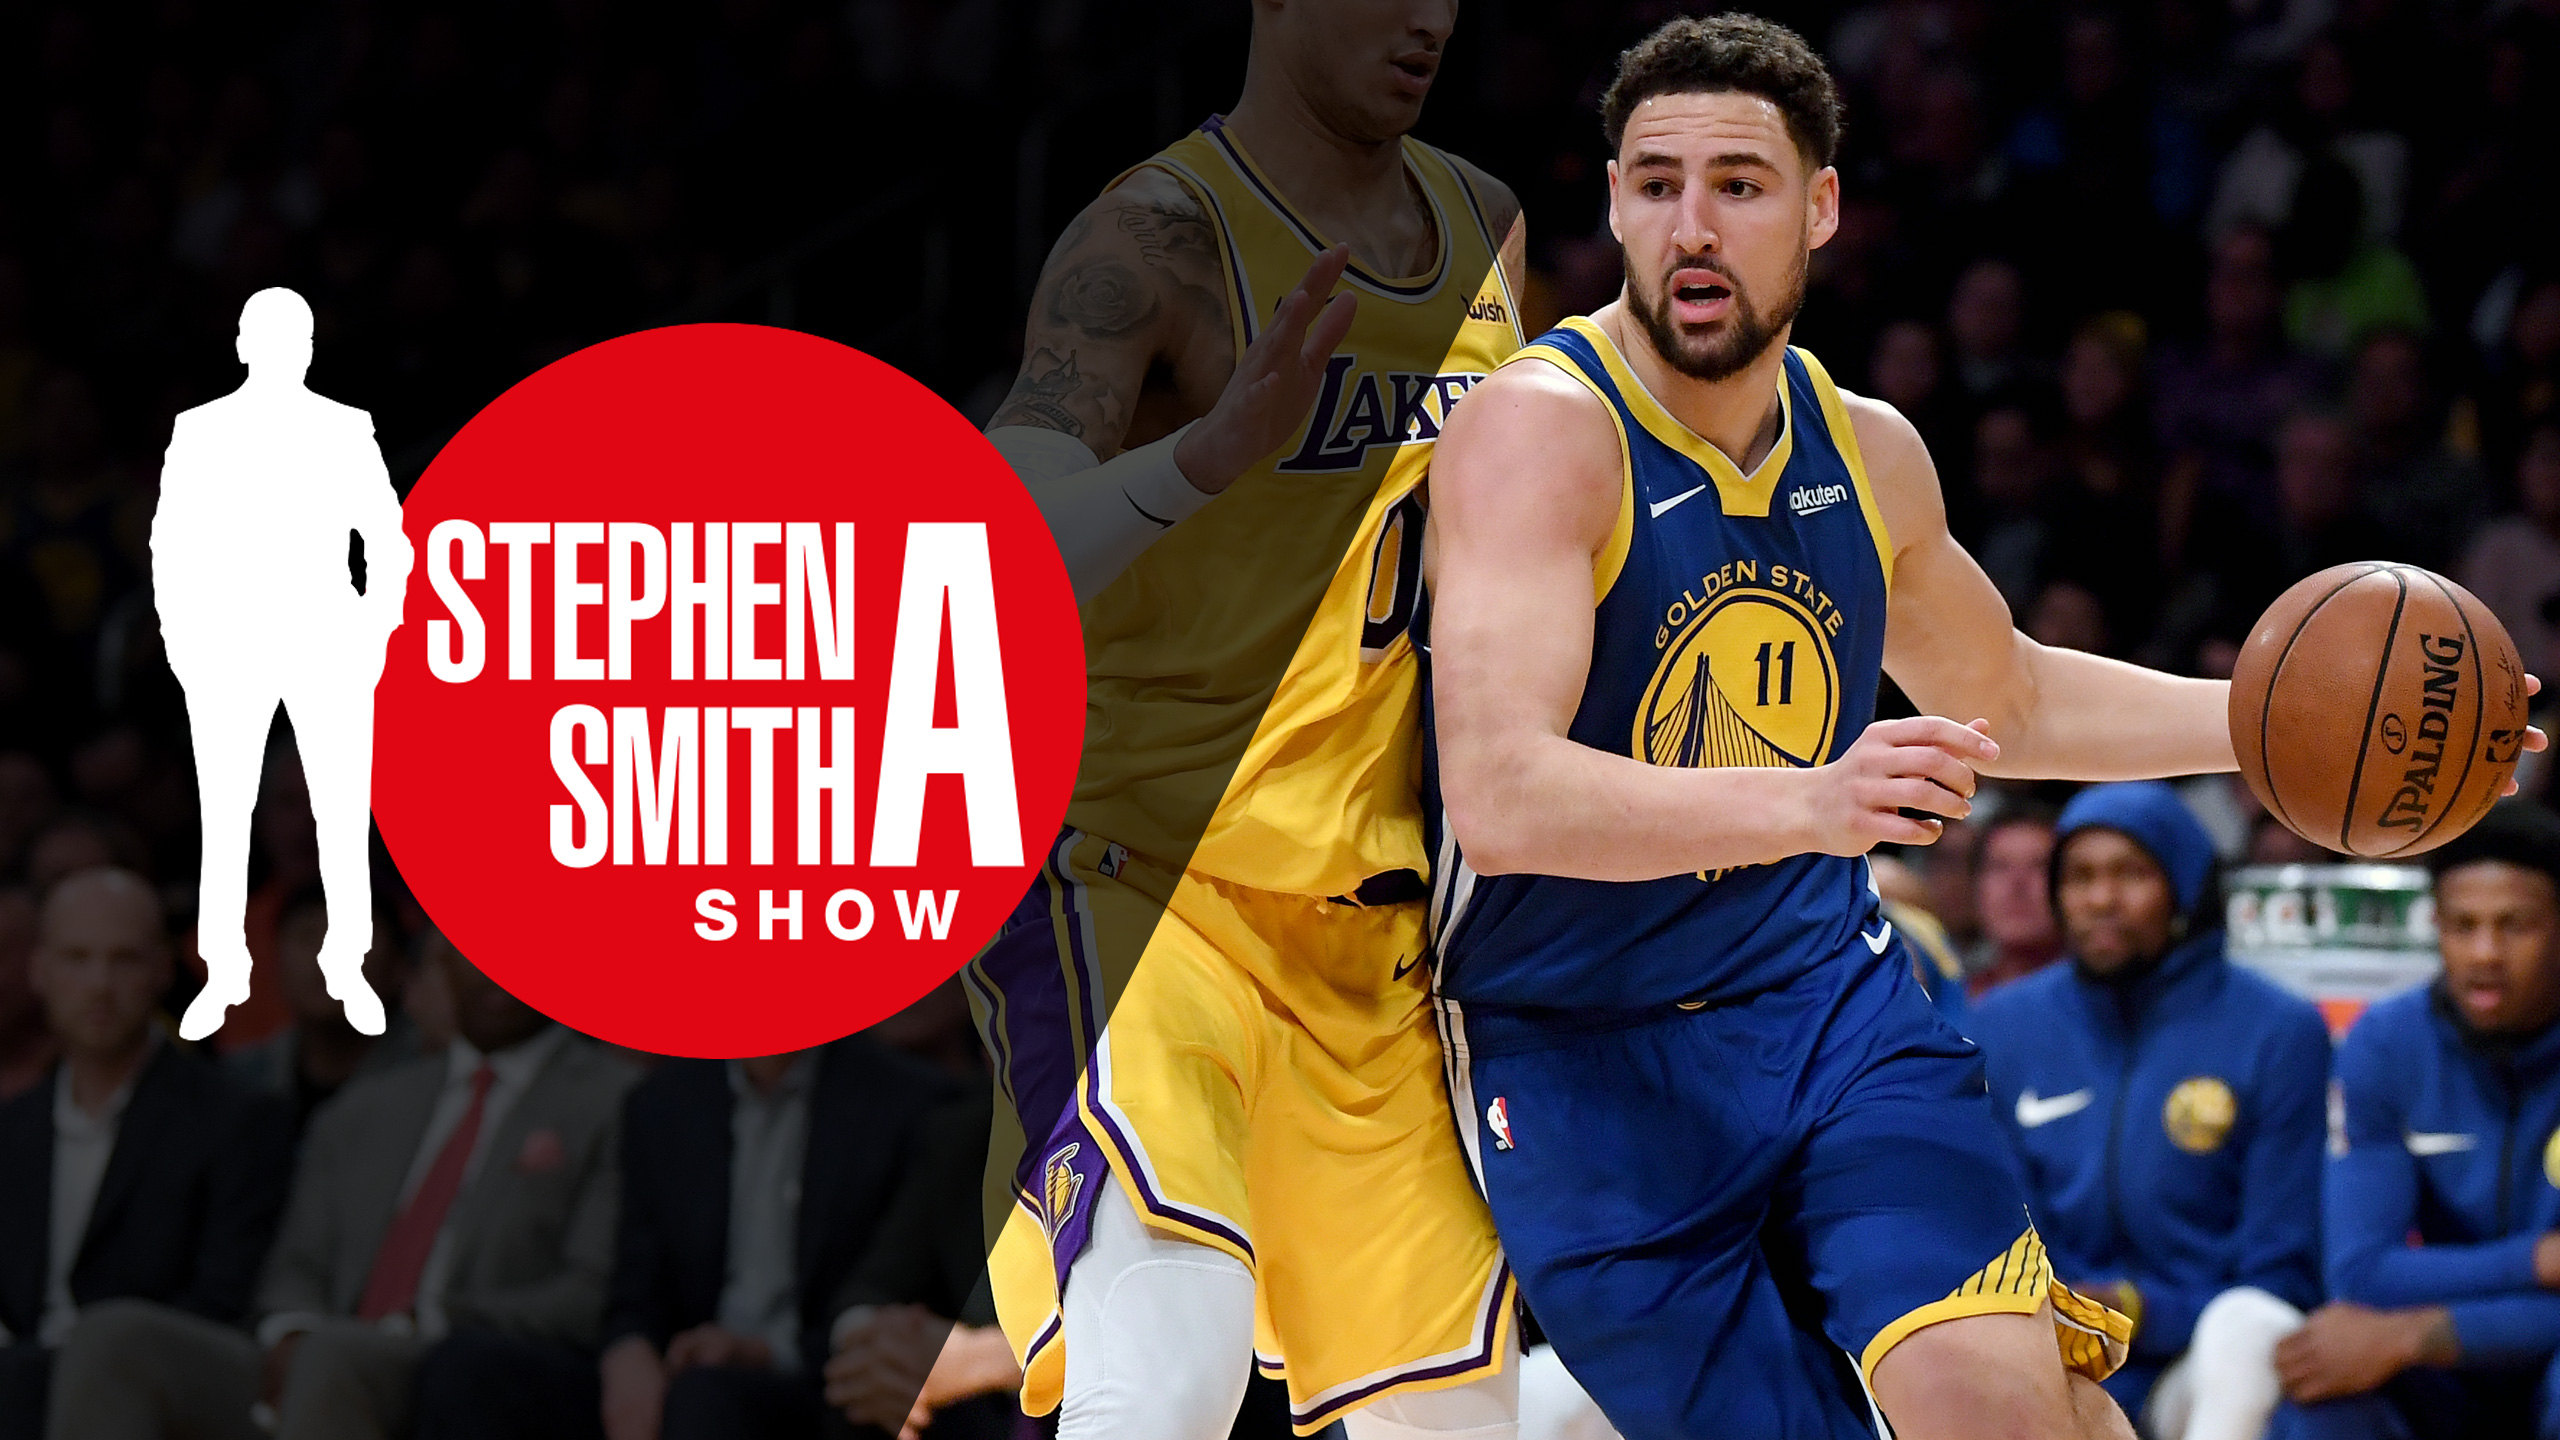 Tue, 1/22 - The Stephen A. Smith Show